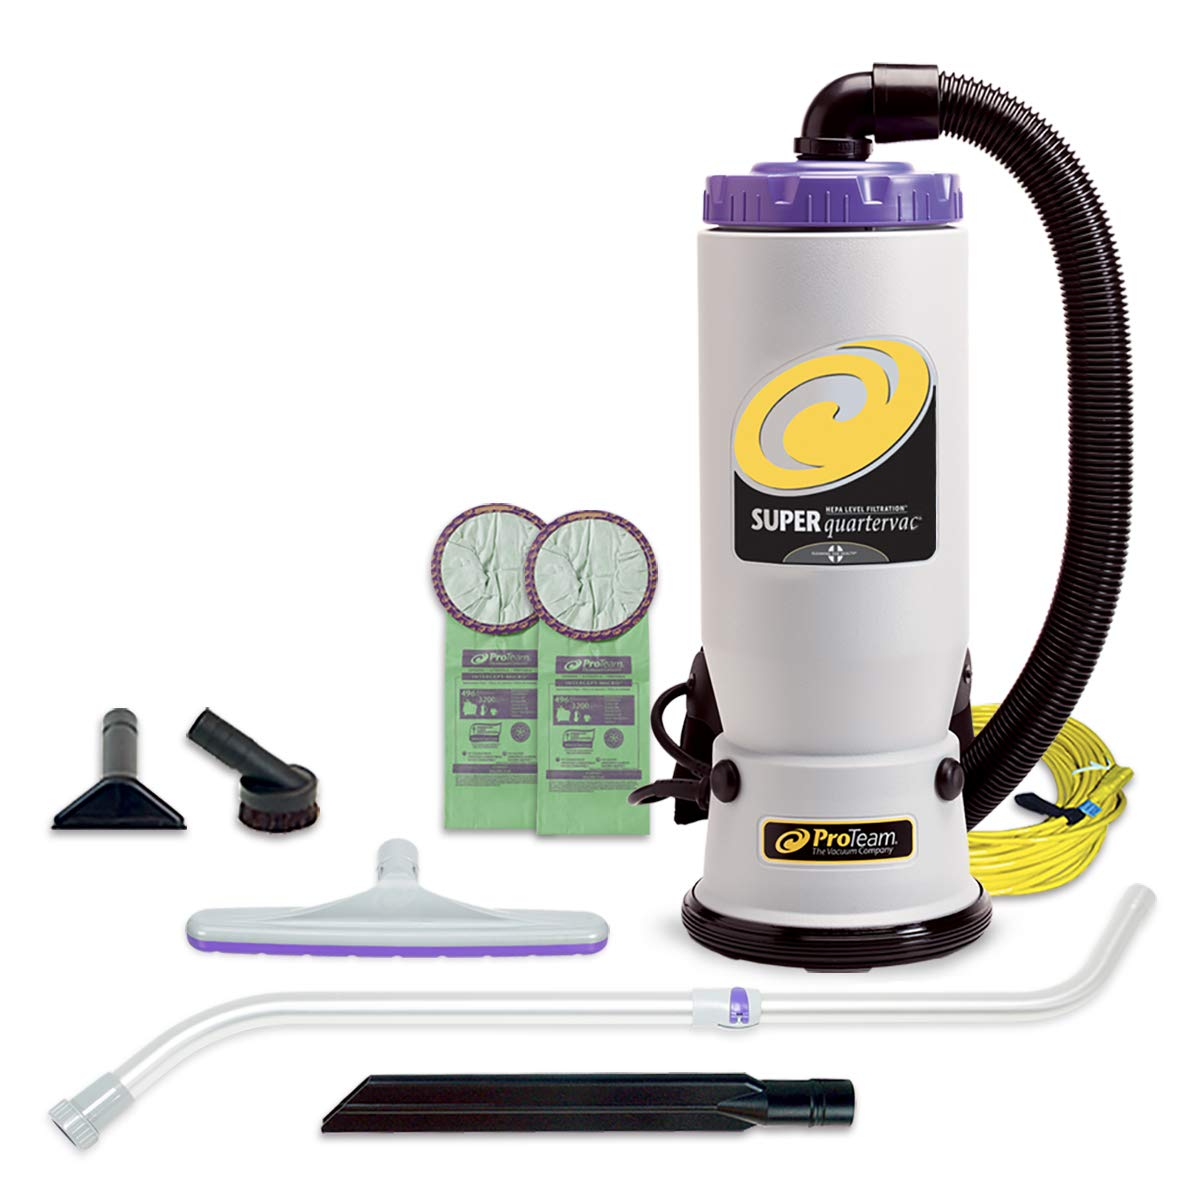 ProTeam Backpack Vacuums, Super QuarterVac Commercial Backpack Vacuum Cleaner with HEPA Media Filtration and Telescoping Wand Tool Kit, 6 Quart, Corded